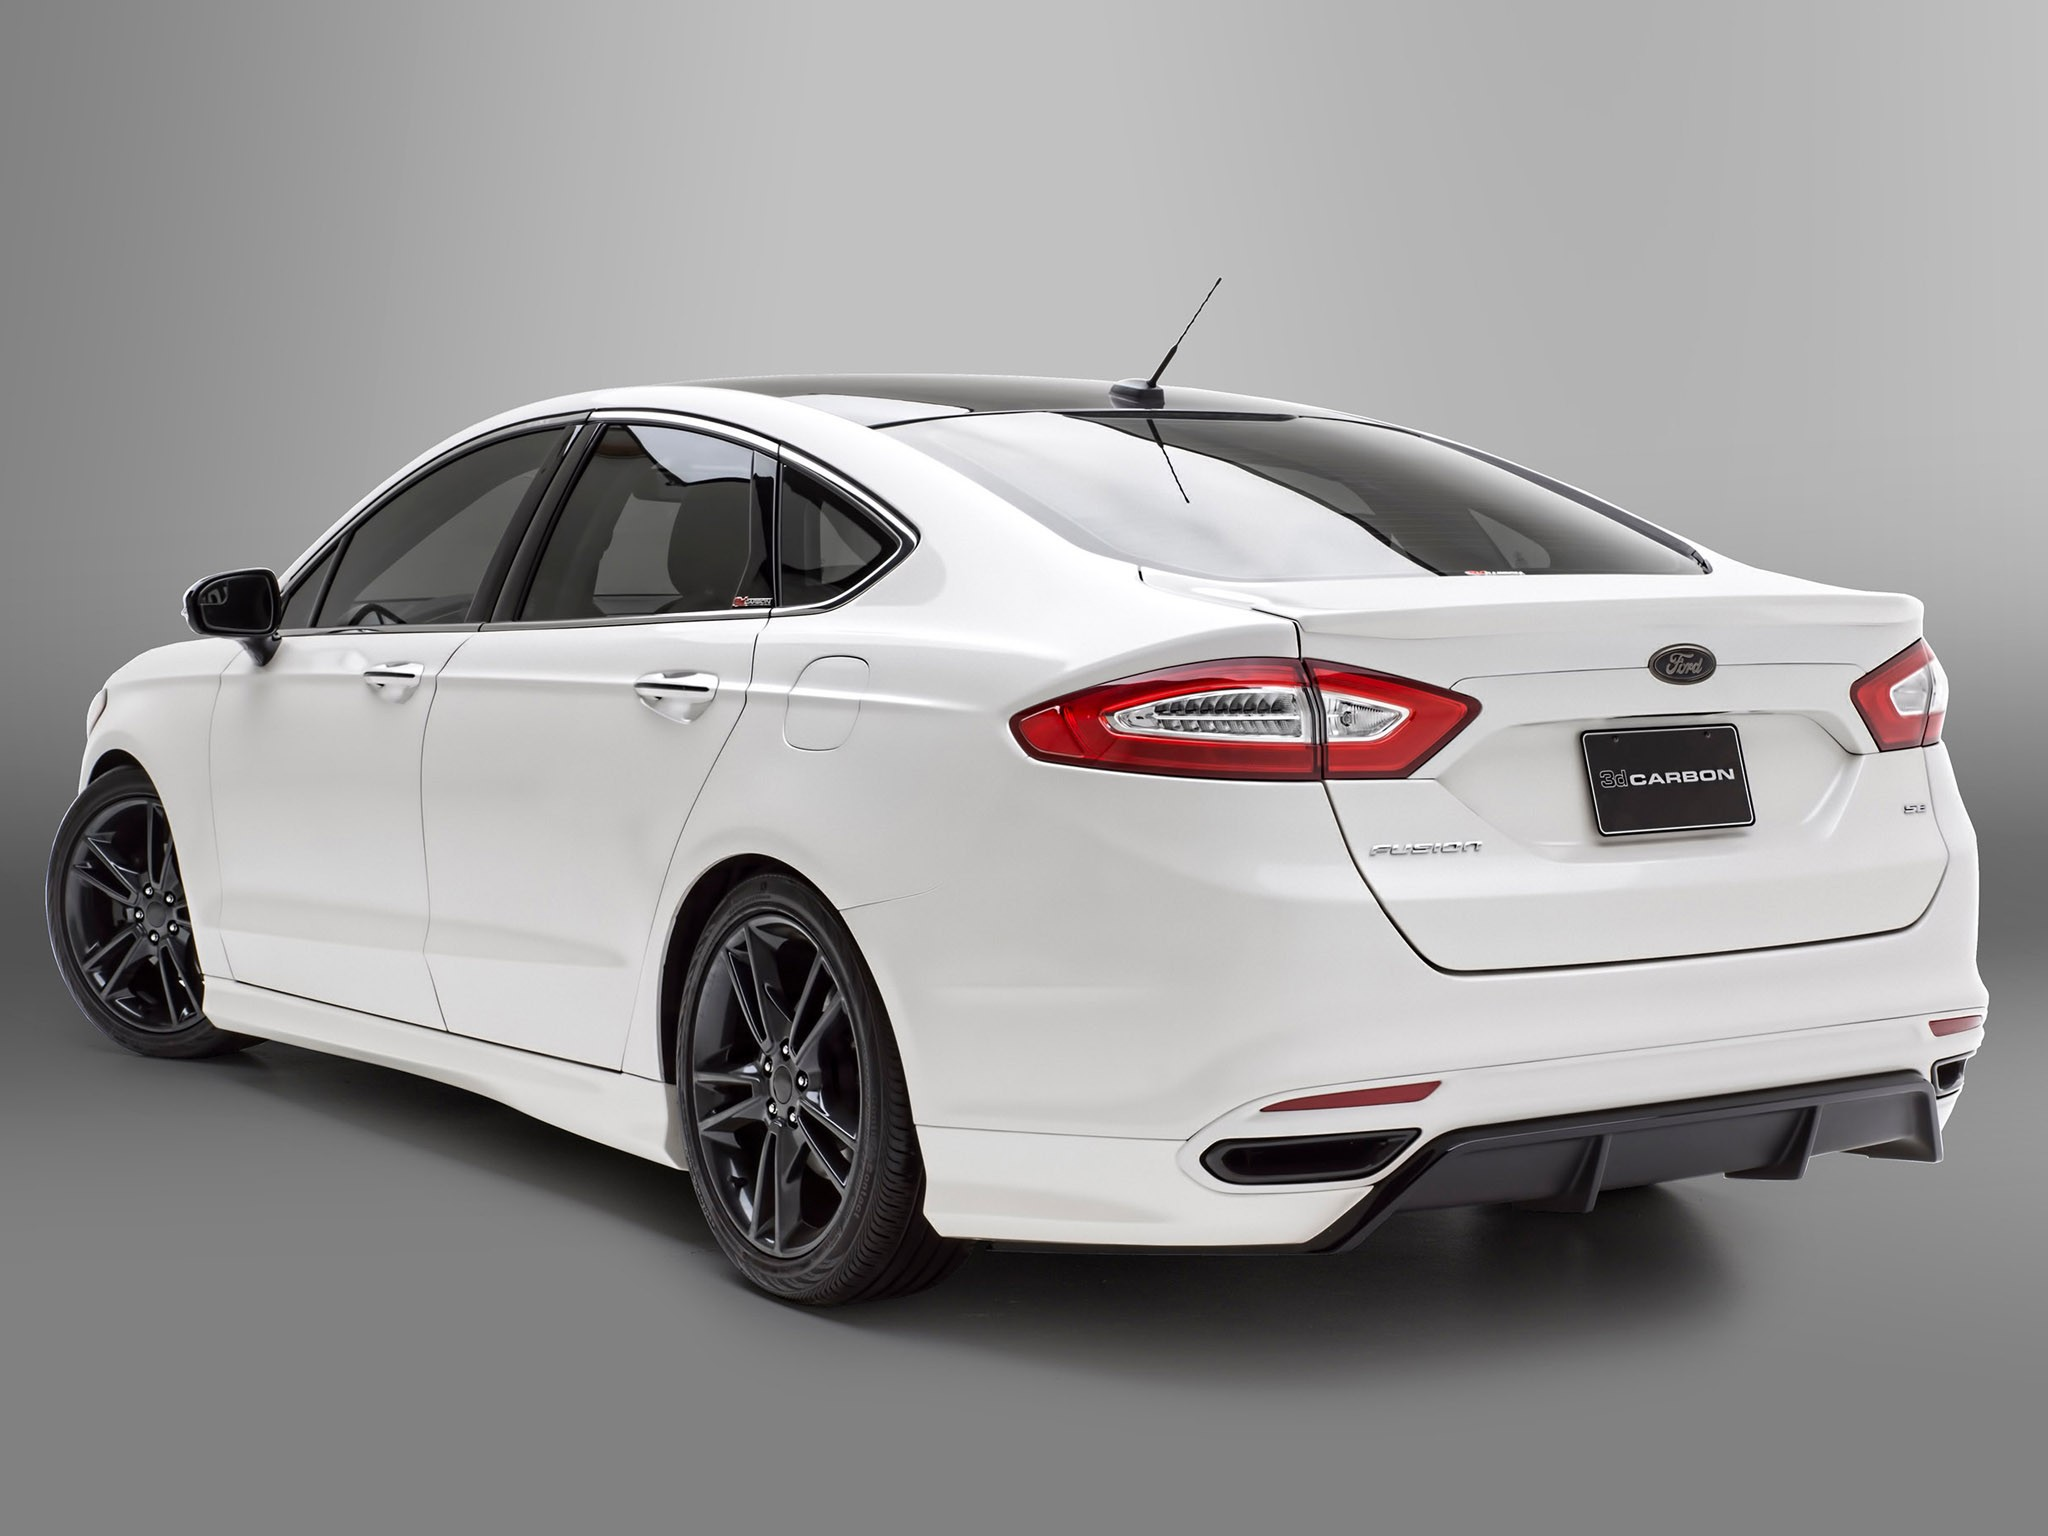 2013 3dcarbon Ford Fusion